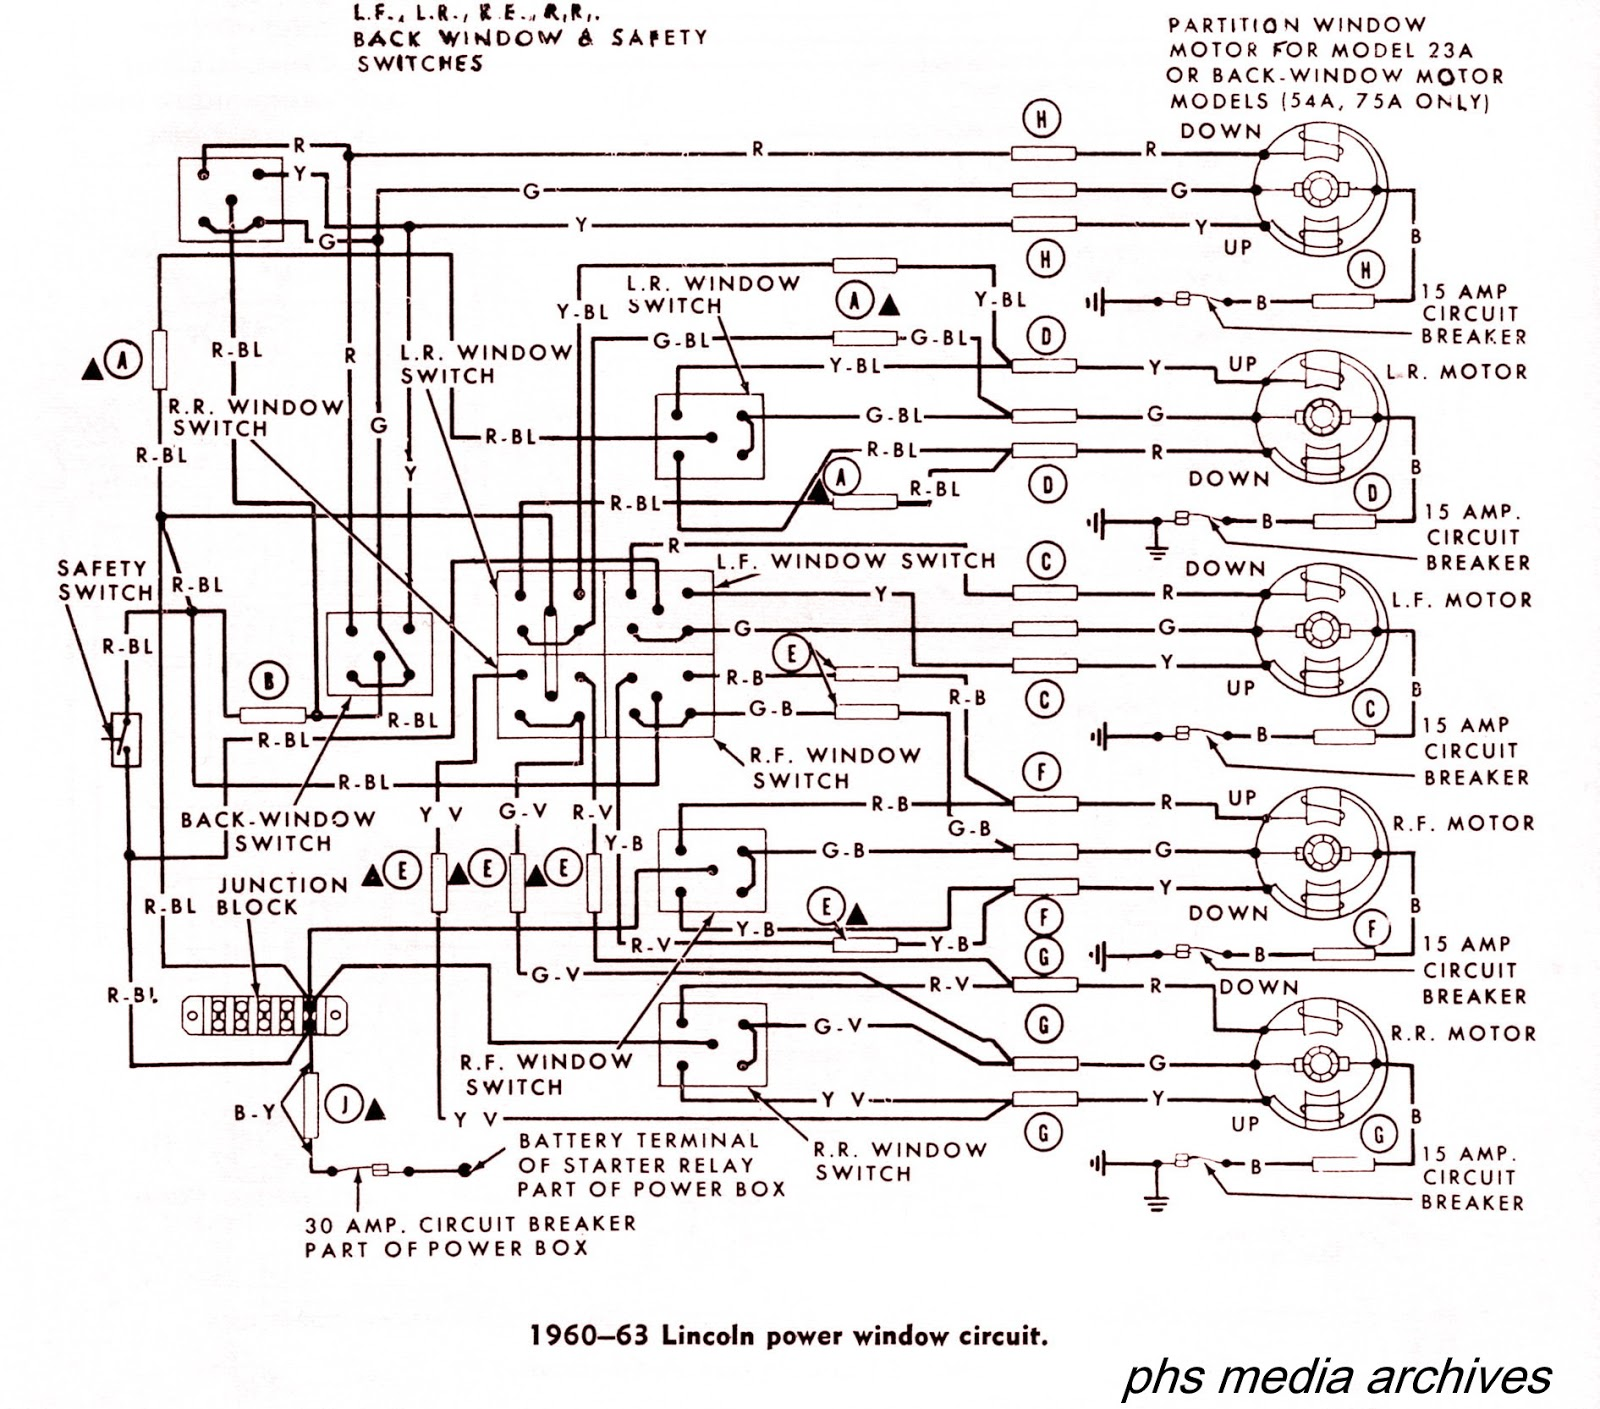 linc%2B%2Bb238 tech series 1960 1964 lincoln wiring diagrams phscollectorcarworld lincoln auto greaser wiring diagram at bayanpartner.co